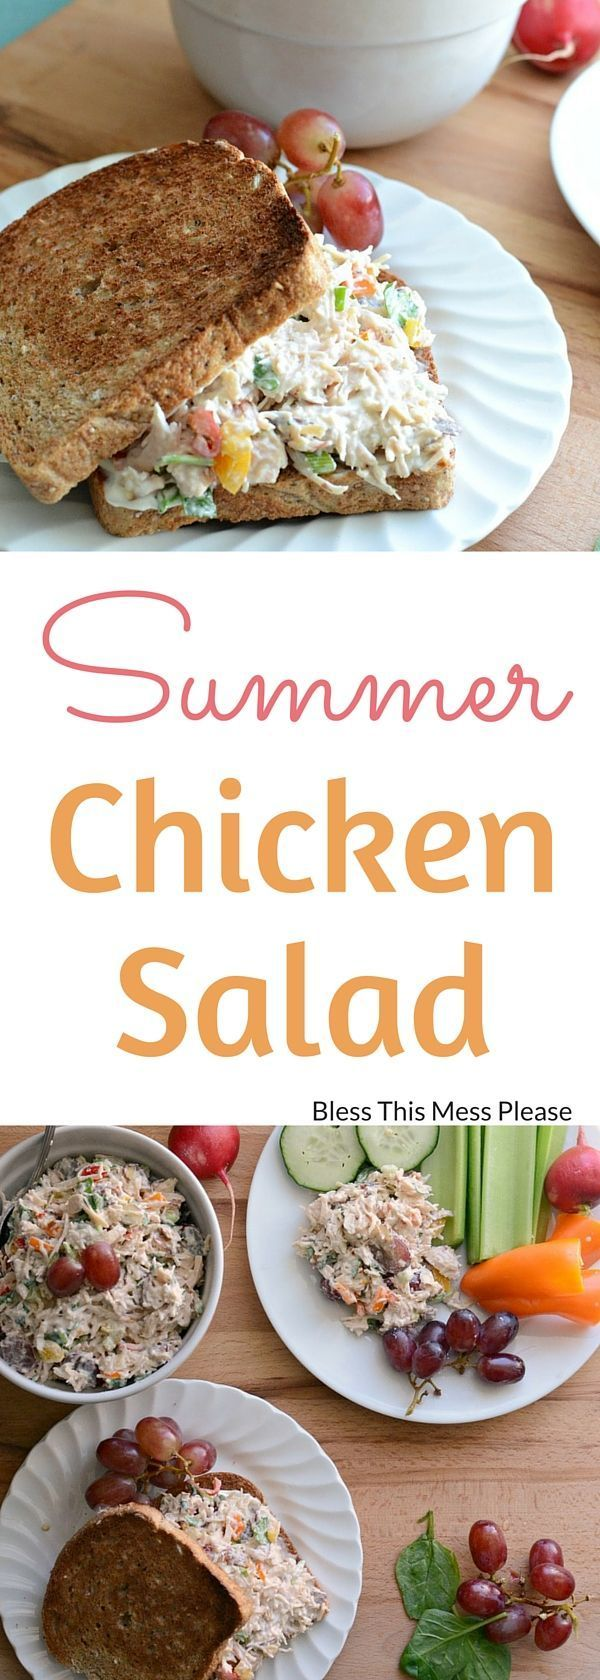 Summer Chicken Salad ~ simple and delicious summer meal!